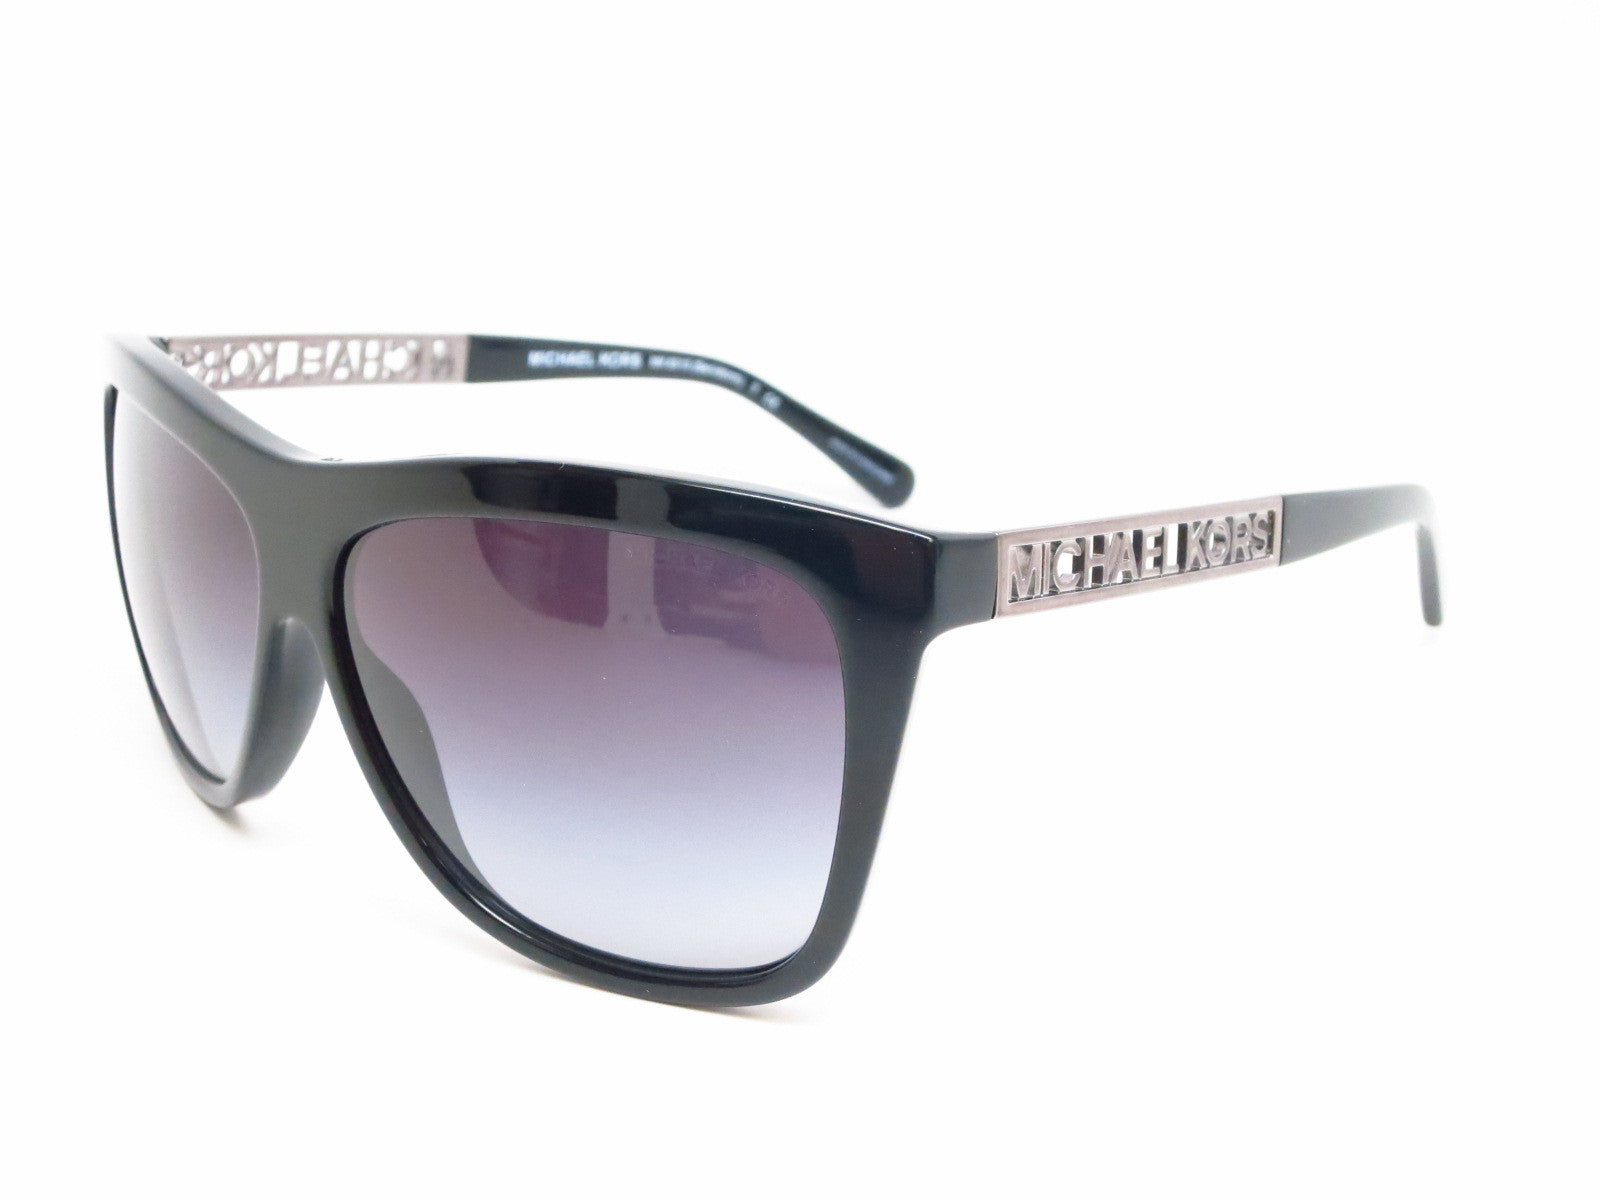 868b741087 Michael Kors MK 6010 Benidorm 3005 11 Black Sunglasses - Eye Heart Shades -  Michael